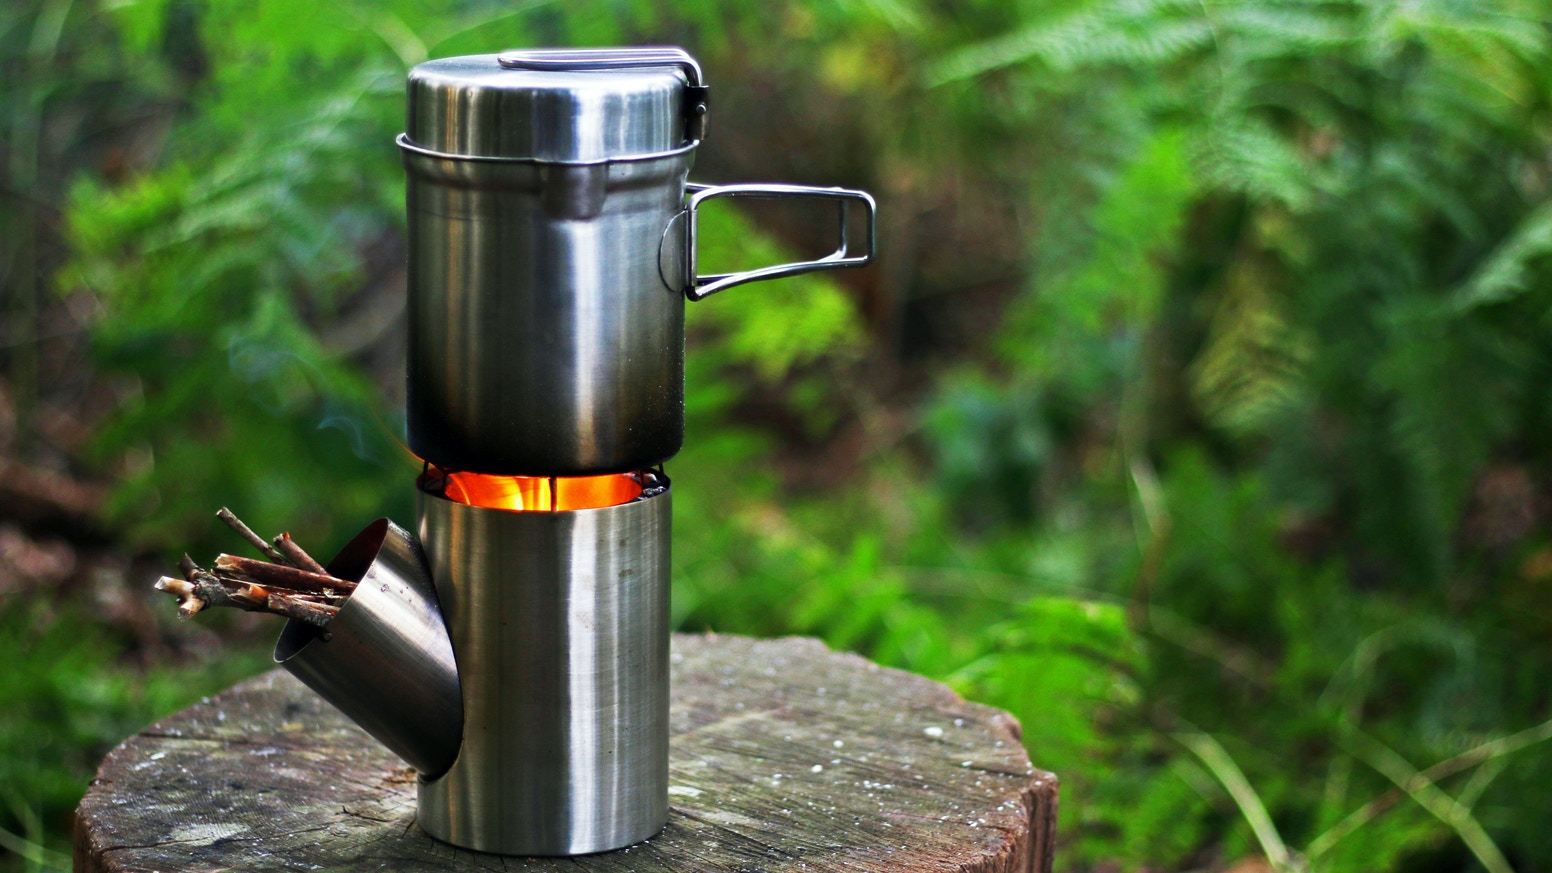 A compact outdoor cooking set that you can use everywhere you travel.